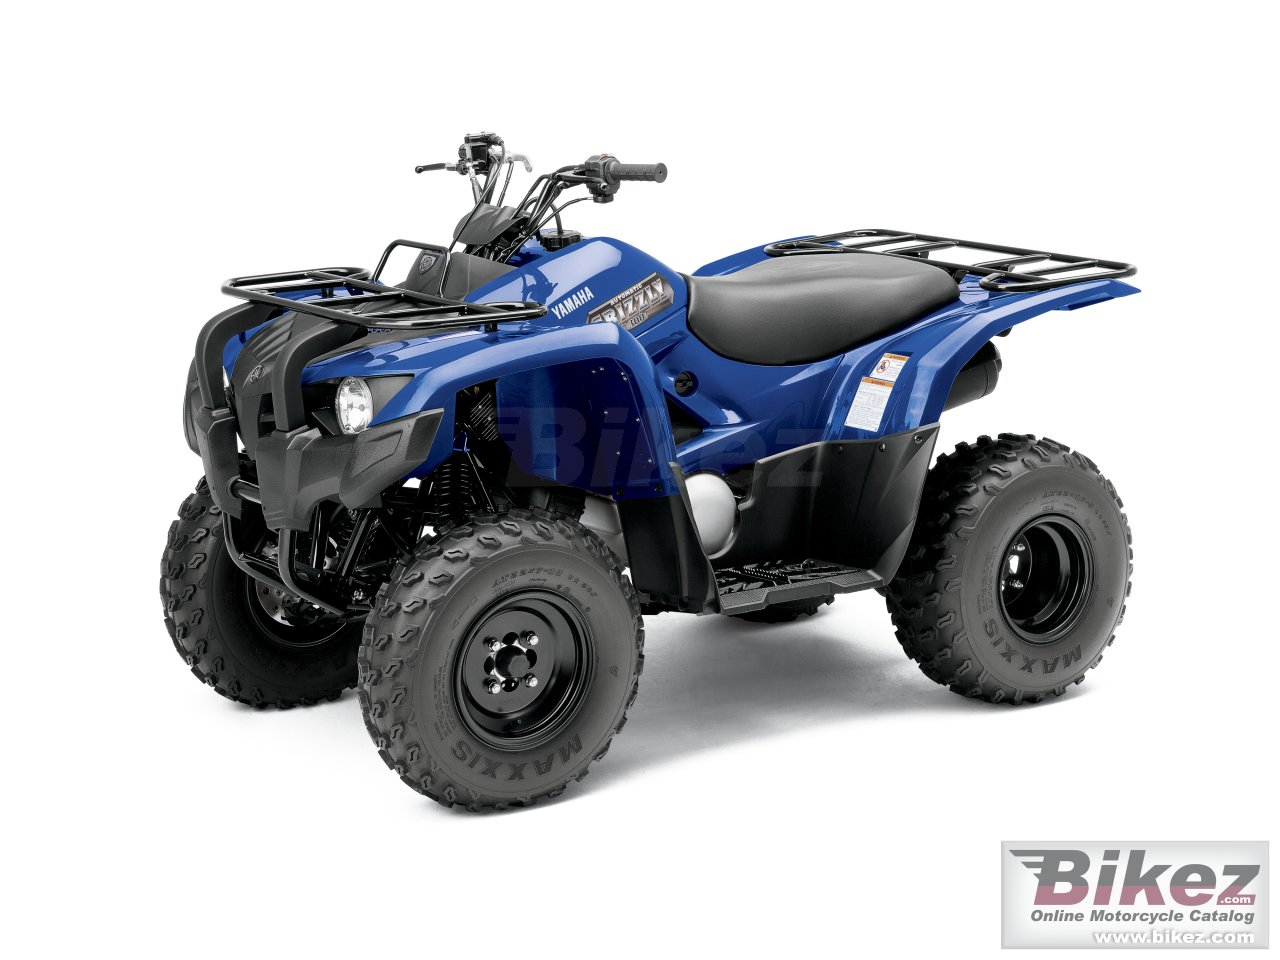 Big Yamaha grizzly 300 automatic picture and wallpaper from Bikez.com